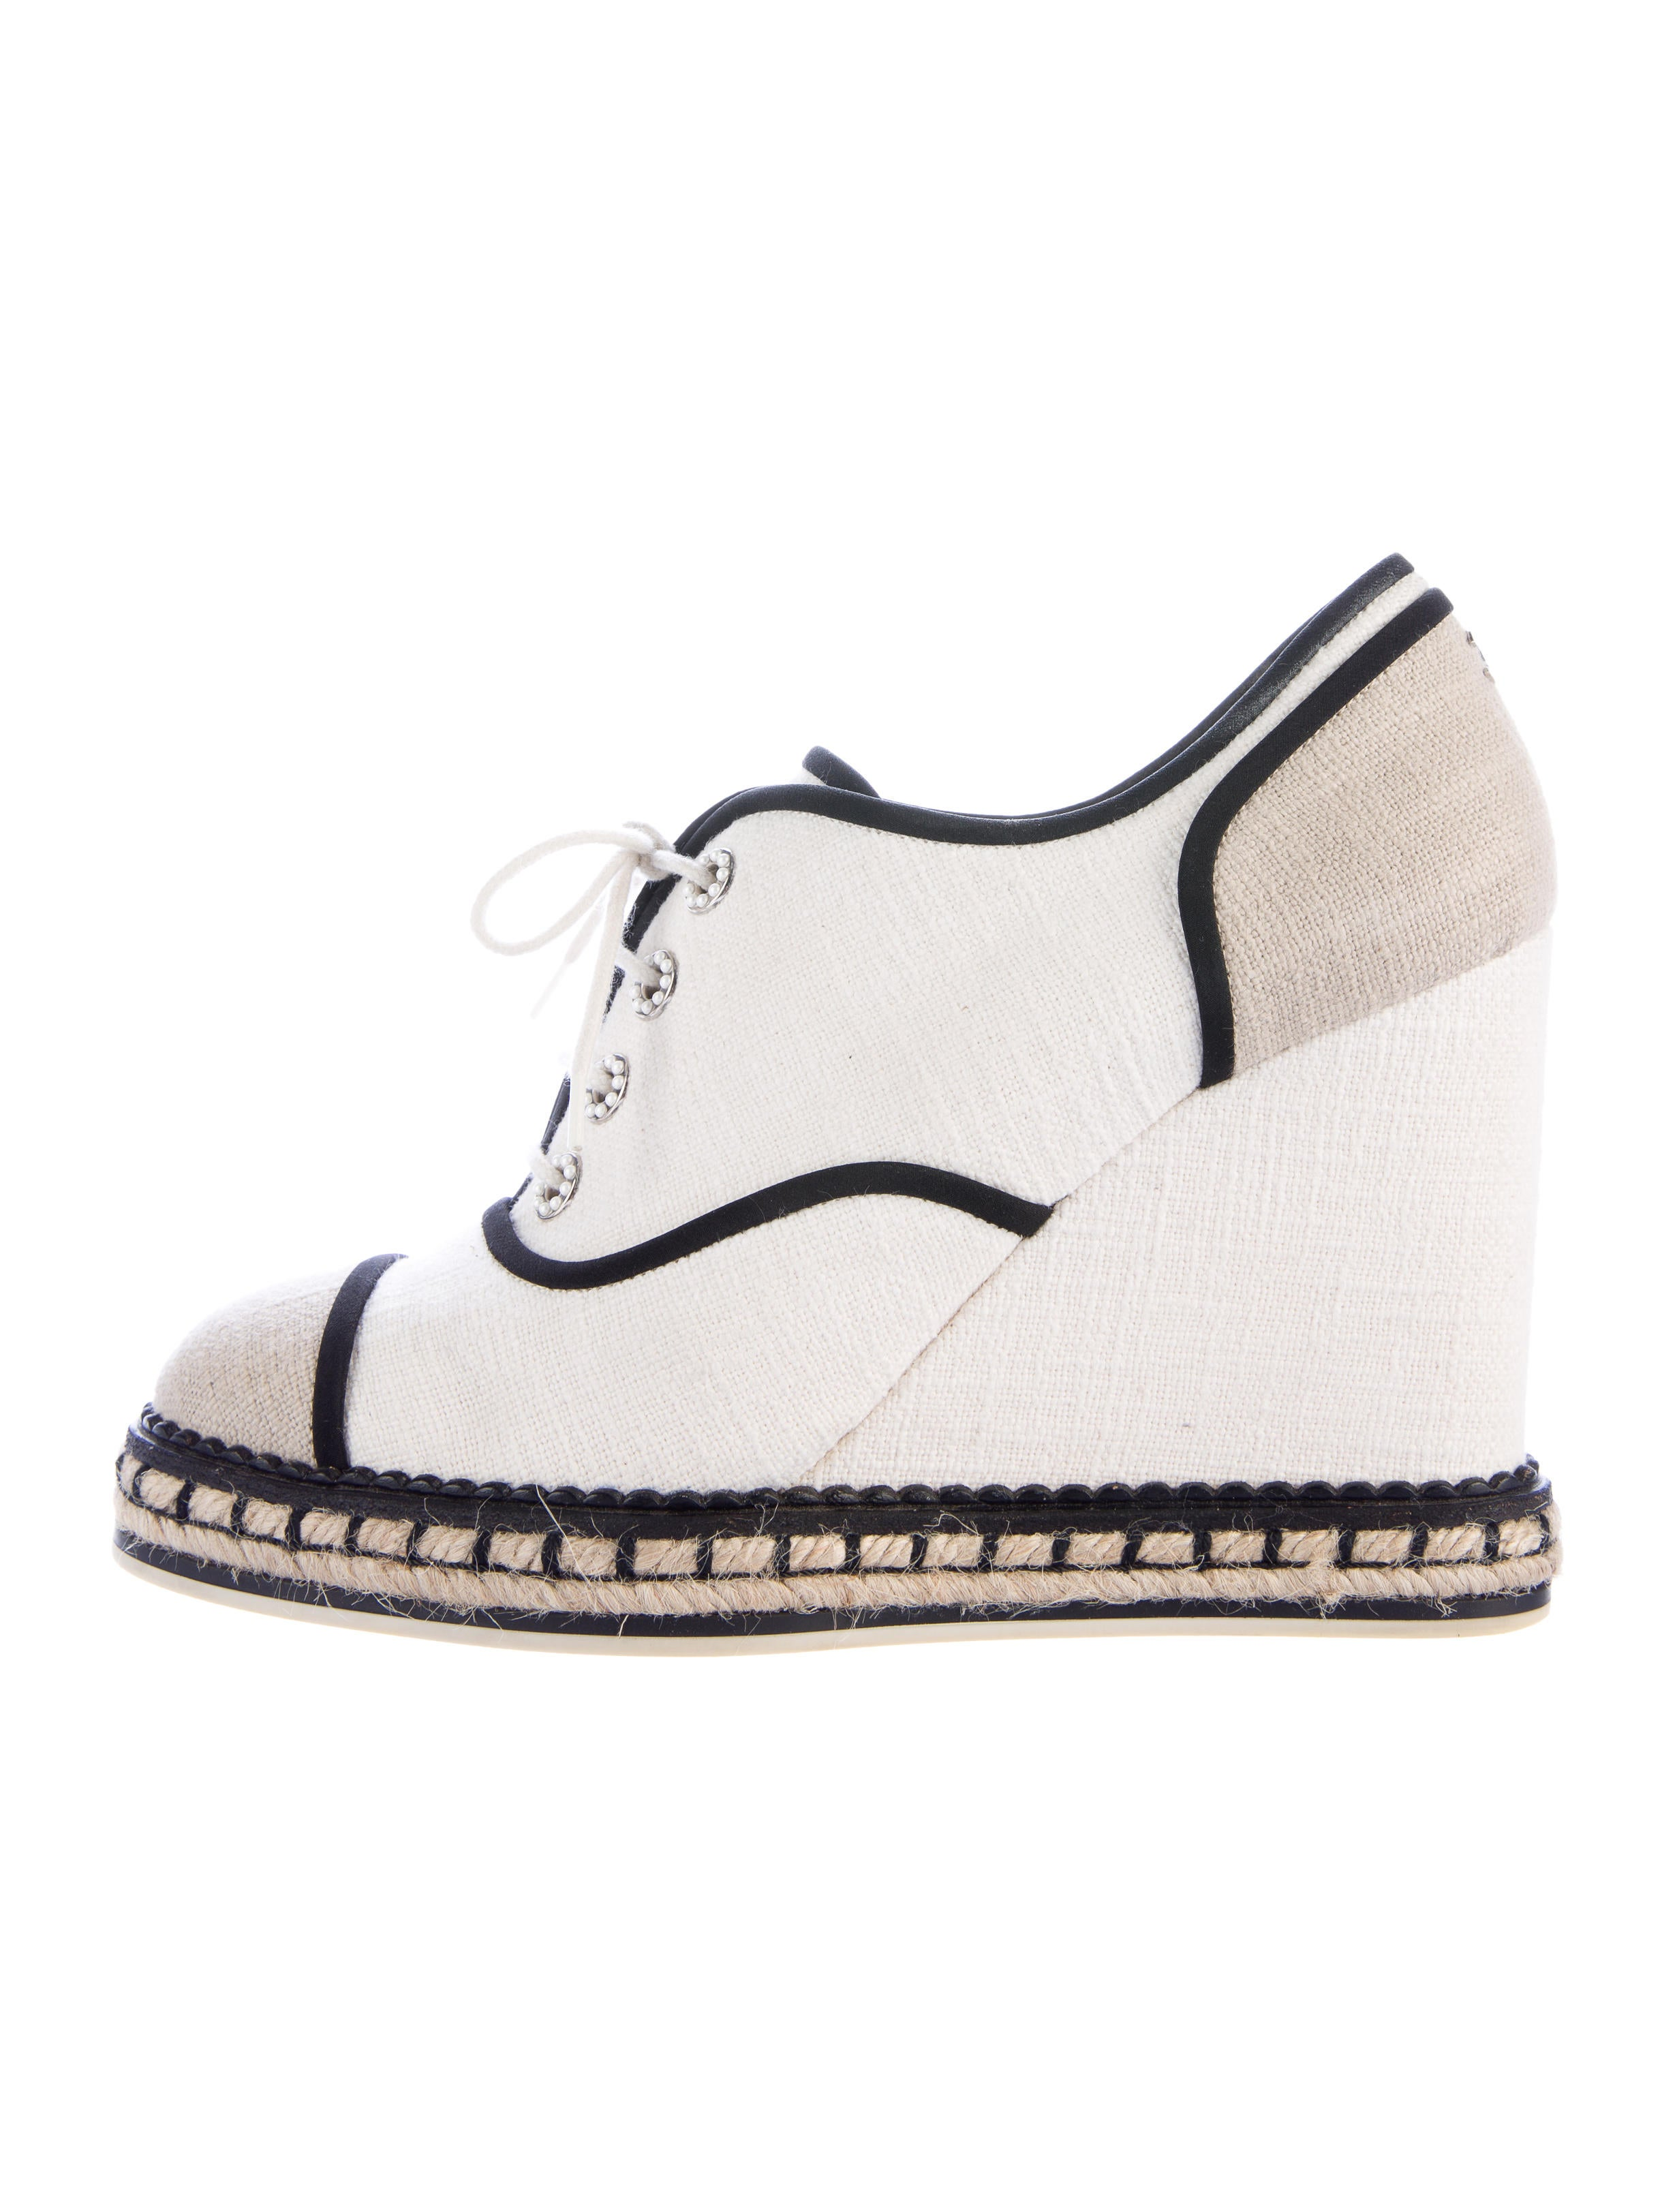 Chanel Canvas Wedge Lace Up Shoes For Sale